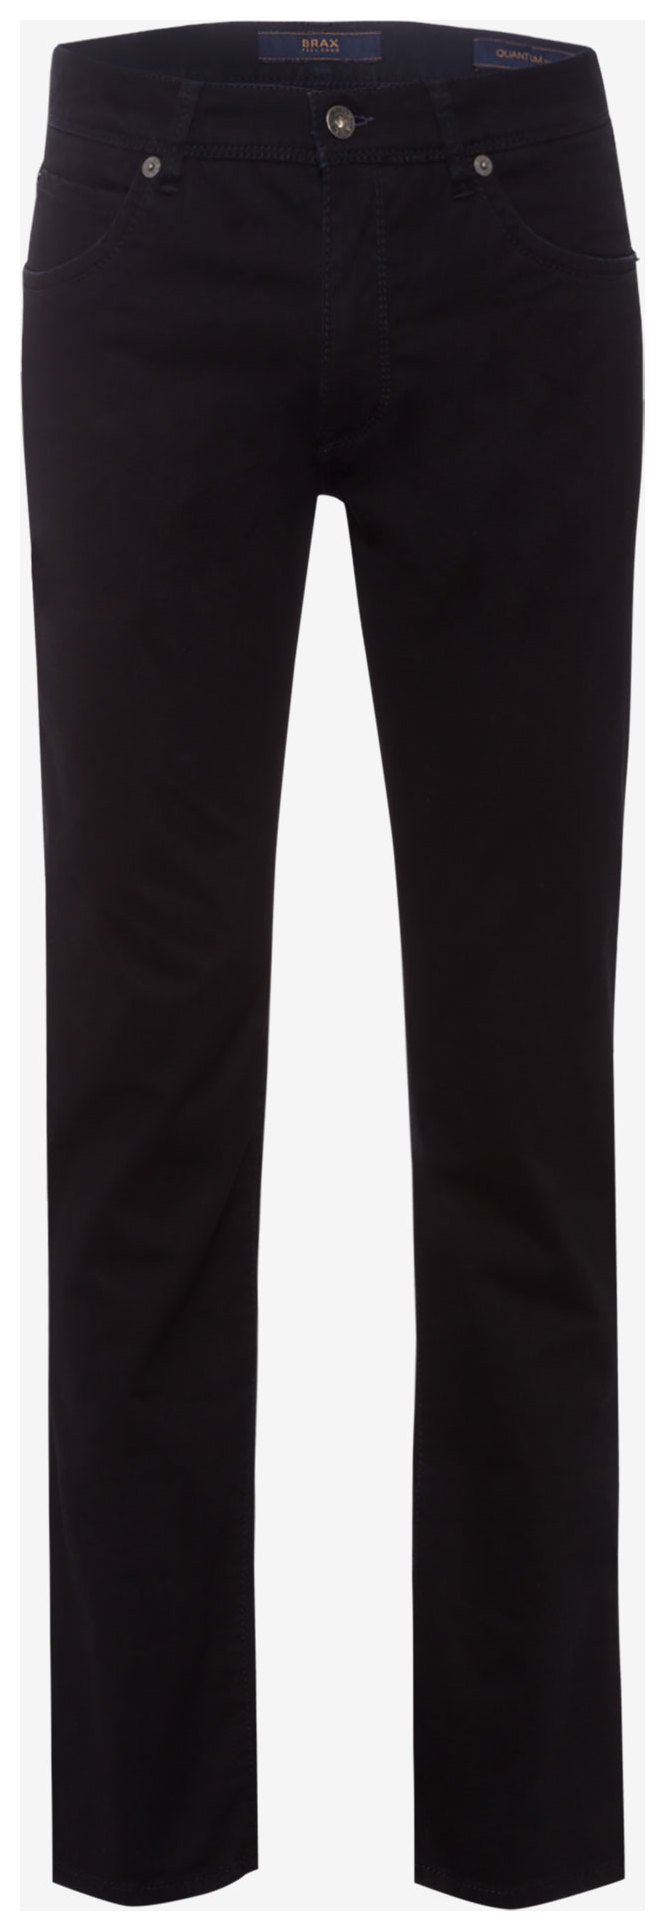 hot new products wholesale for whole family Brax Cadiz Pants Perma Black